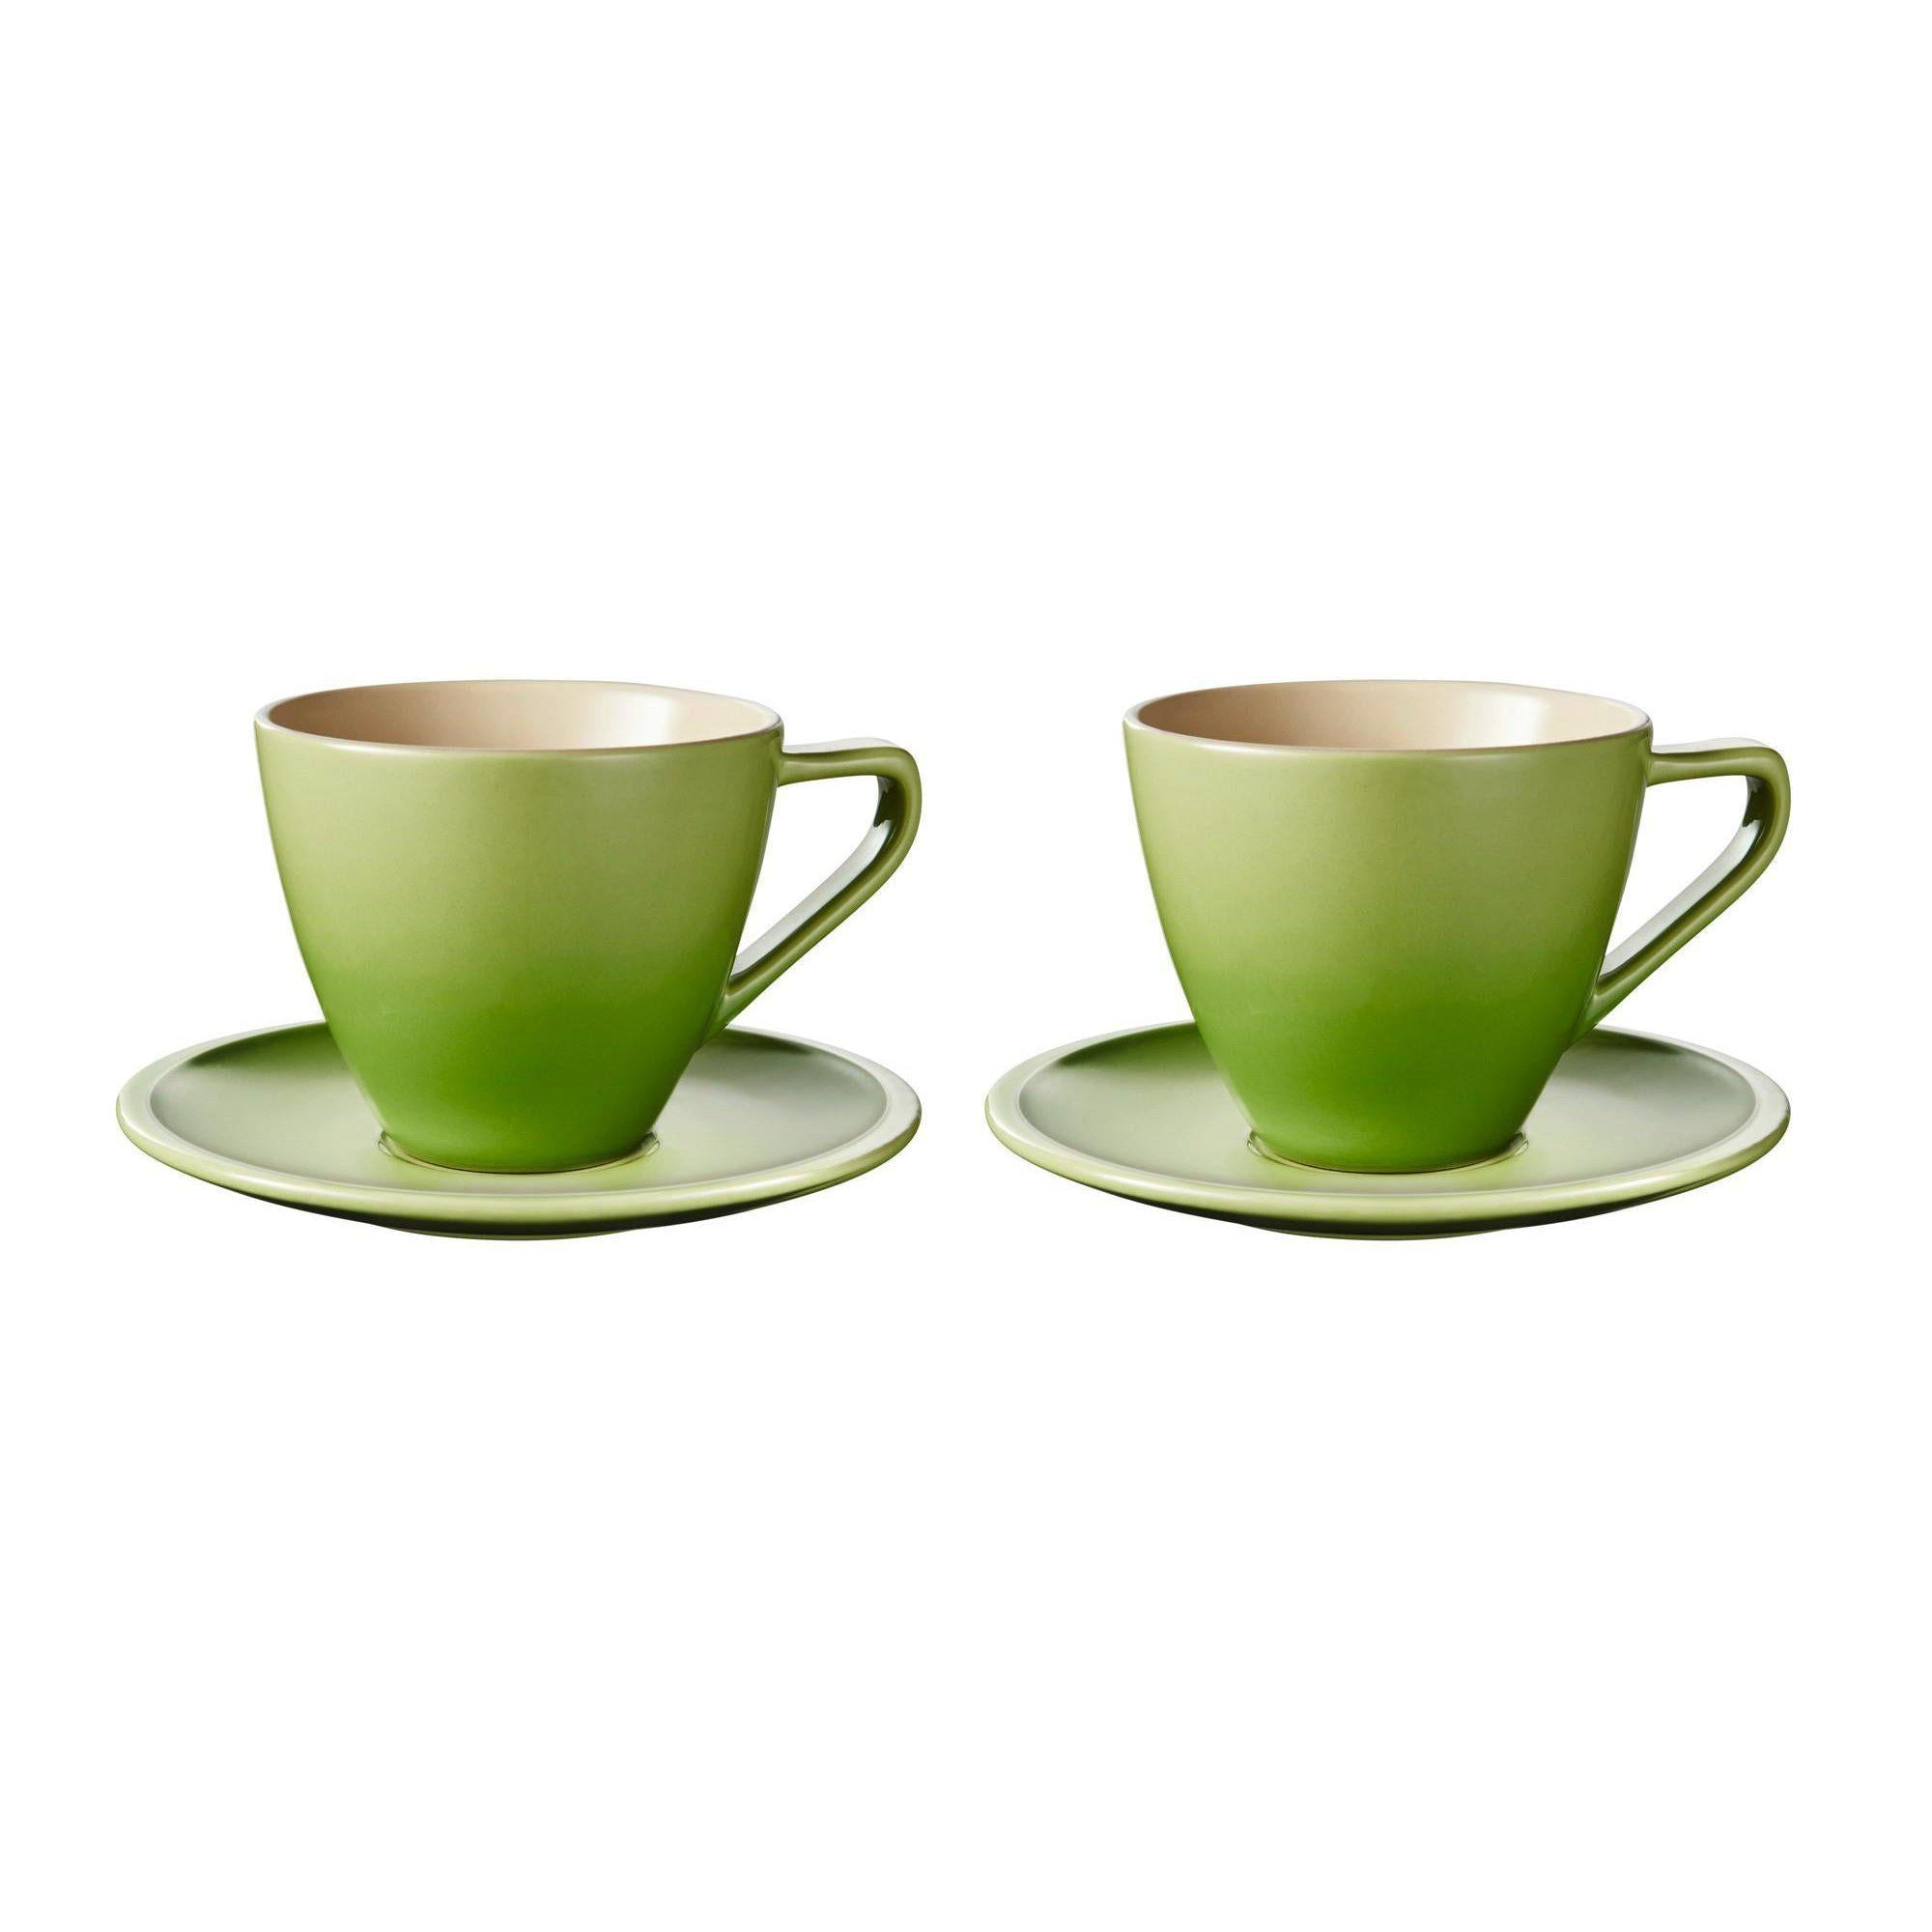 Le Creuset Minimalist Cappuccino Cups (set of 2) Palm